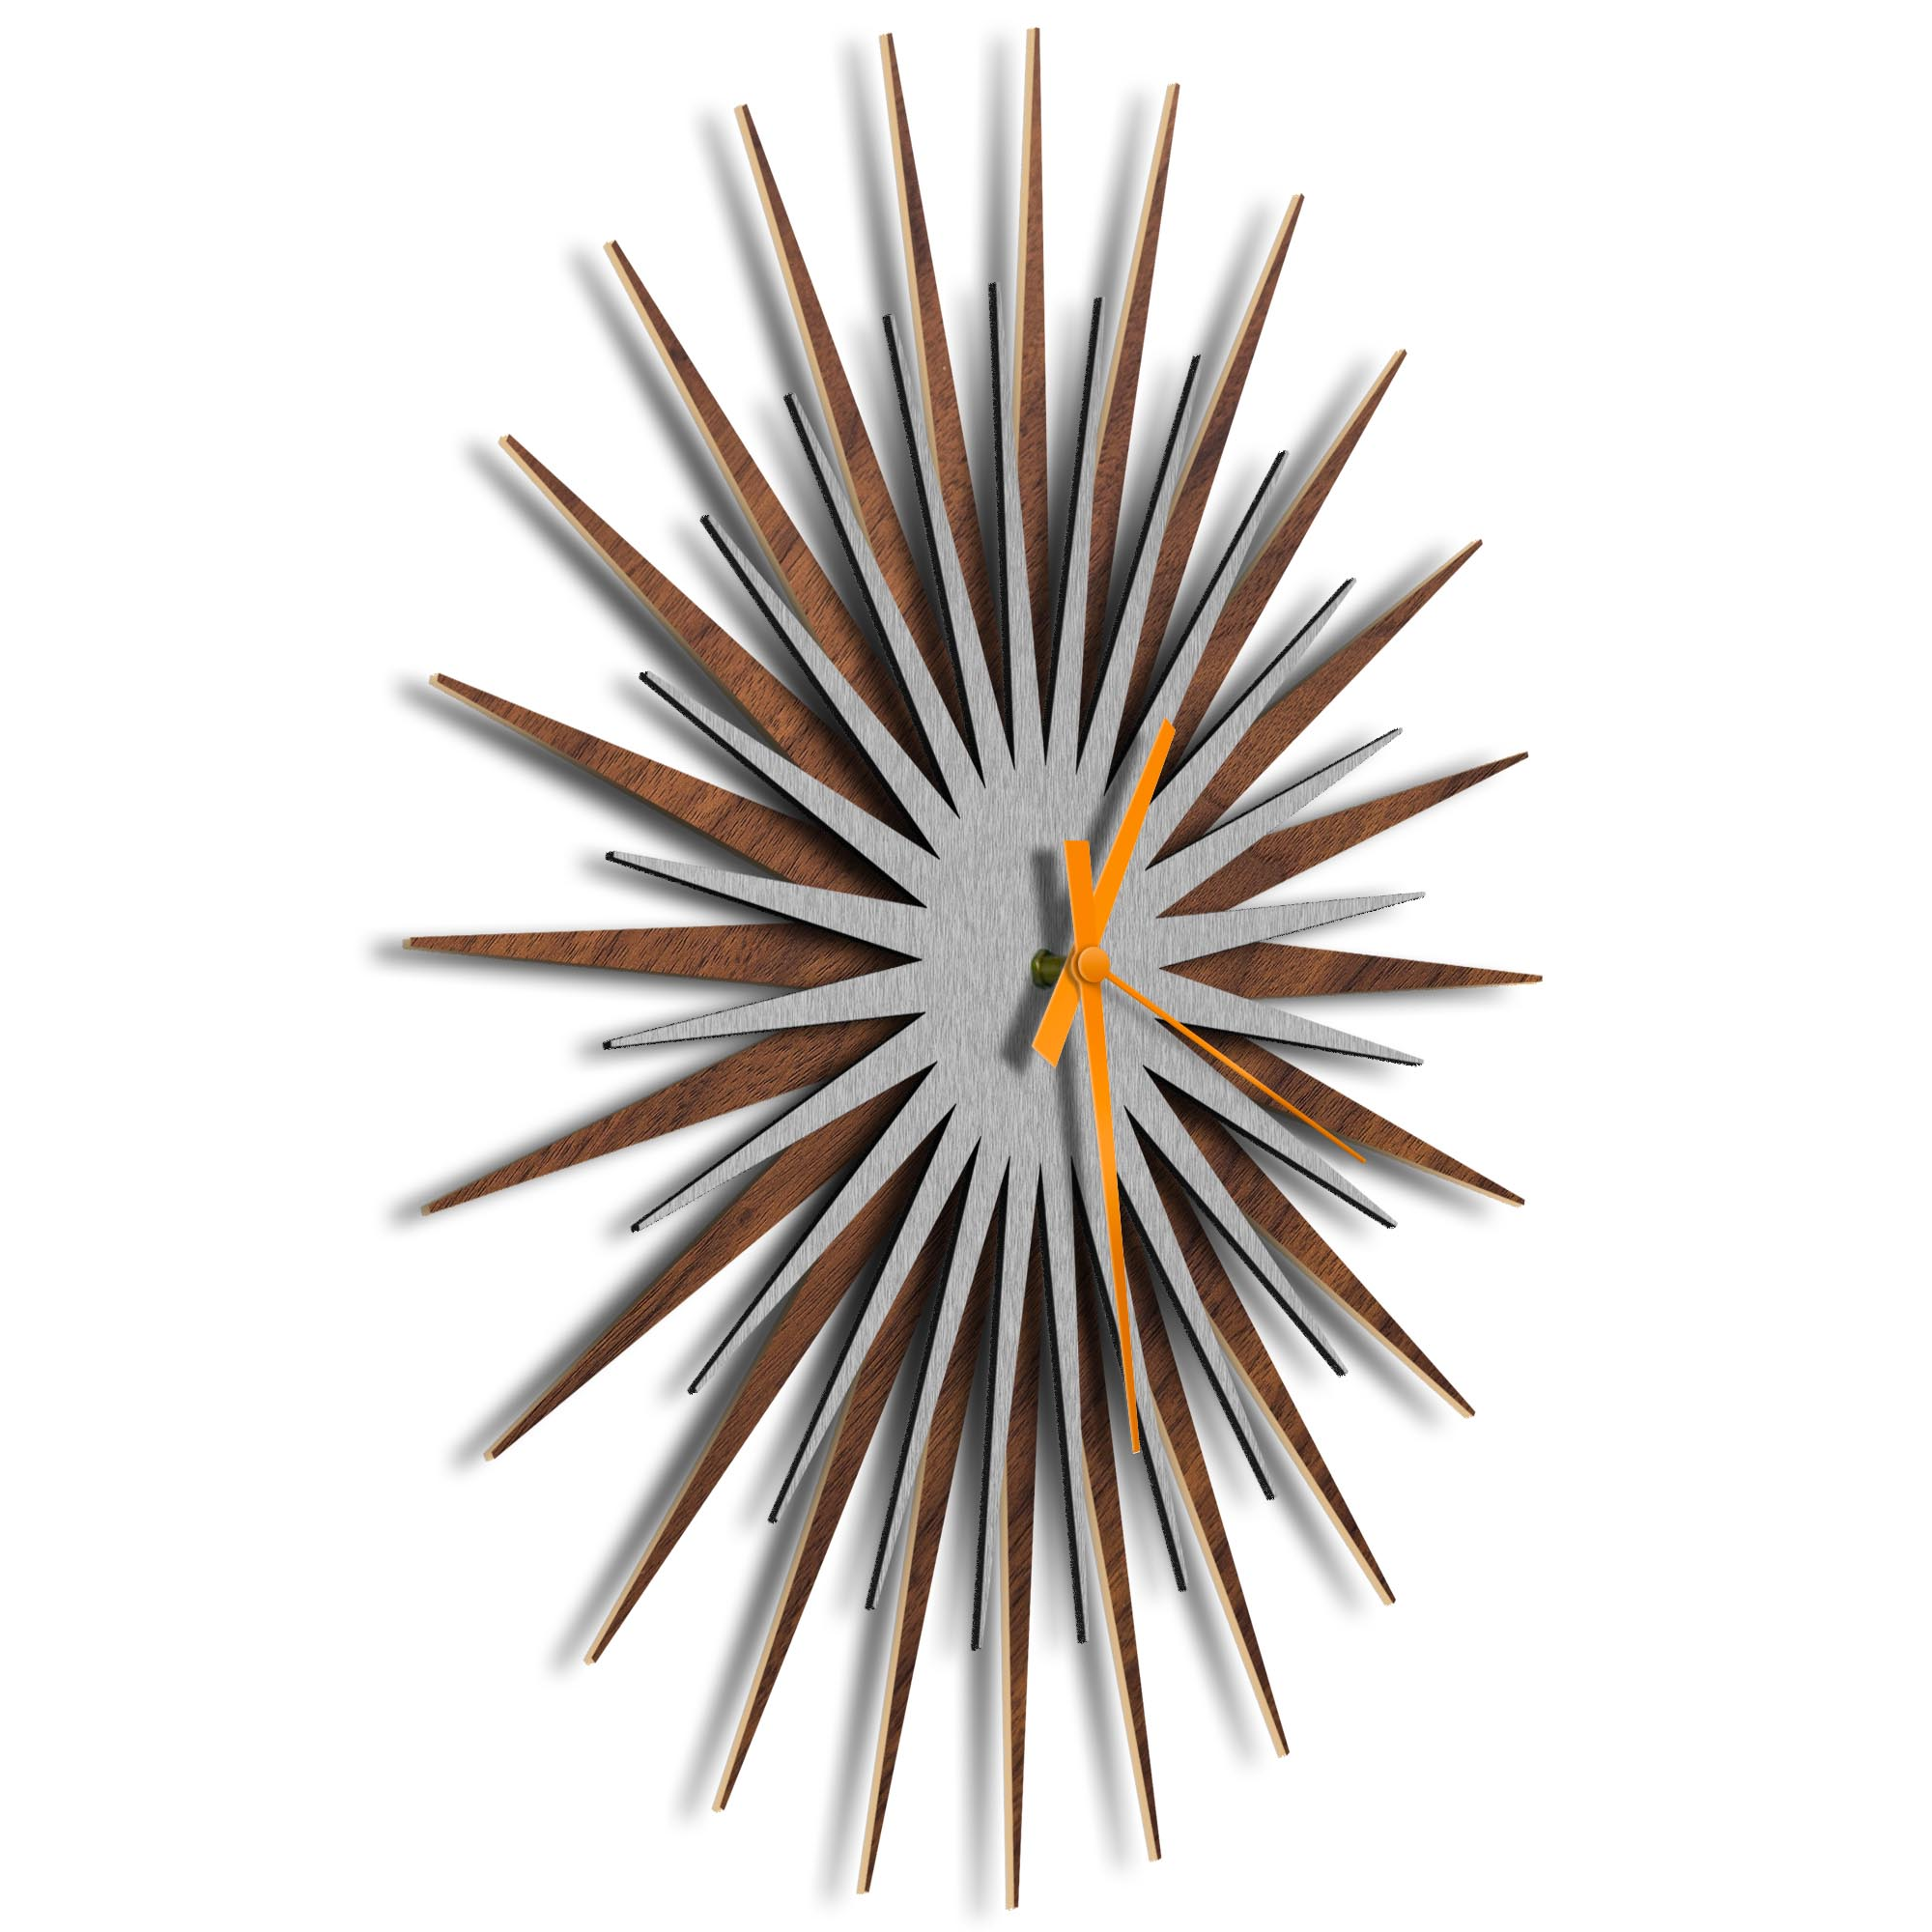 Atomic Era Clock Walnut Silver Orange by Adam Schwoeppe - Mid-Century Modern Clock on Brushed Walnut Polymetal - Image 2